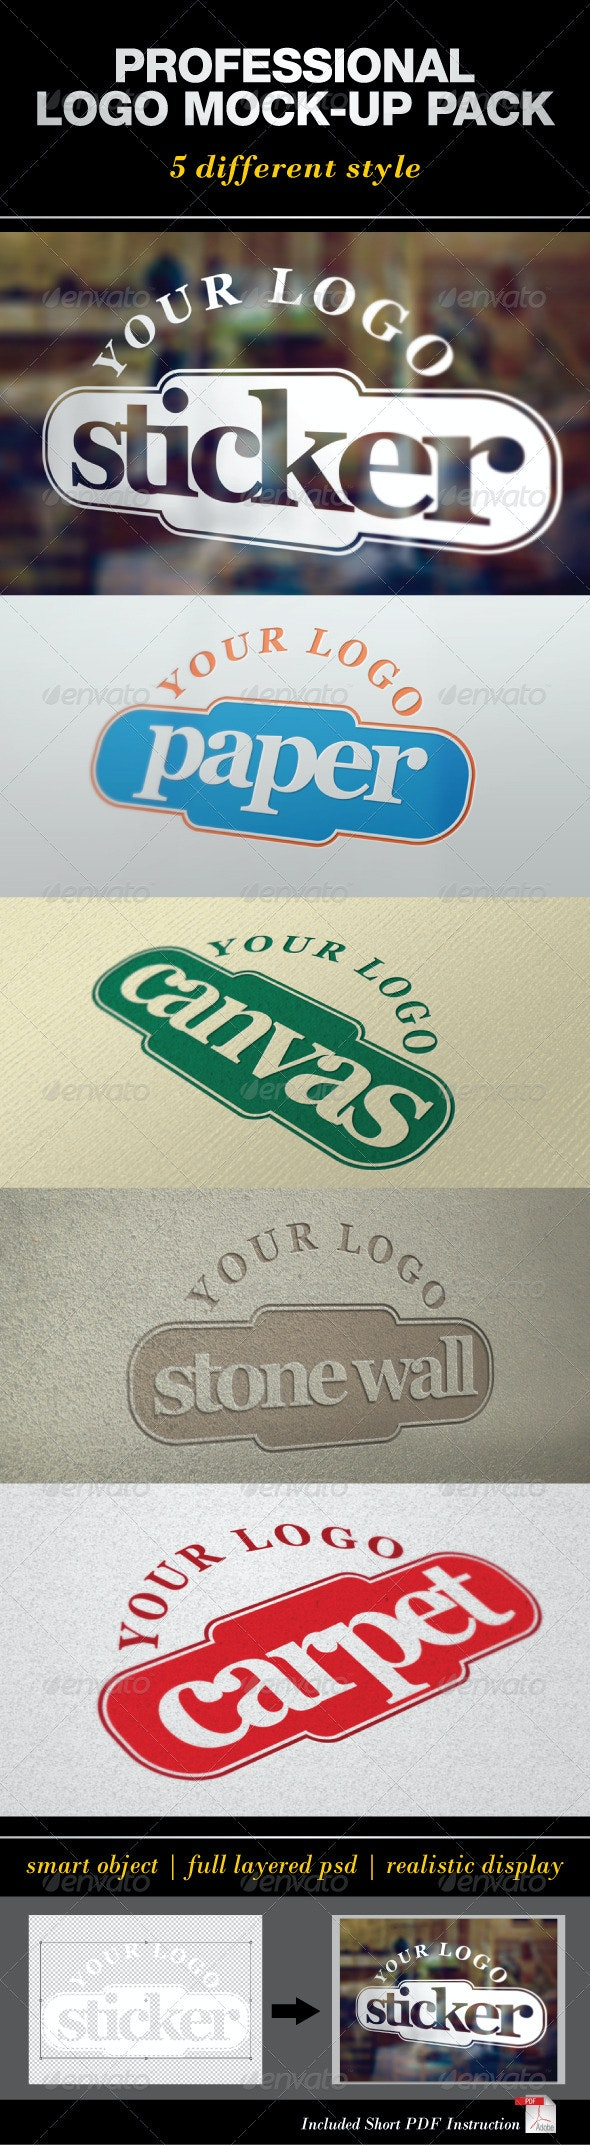 Professional Logo Mock-Up Pack - Logo Product Mock-Ups